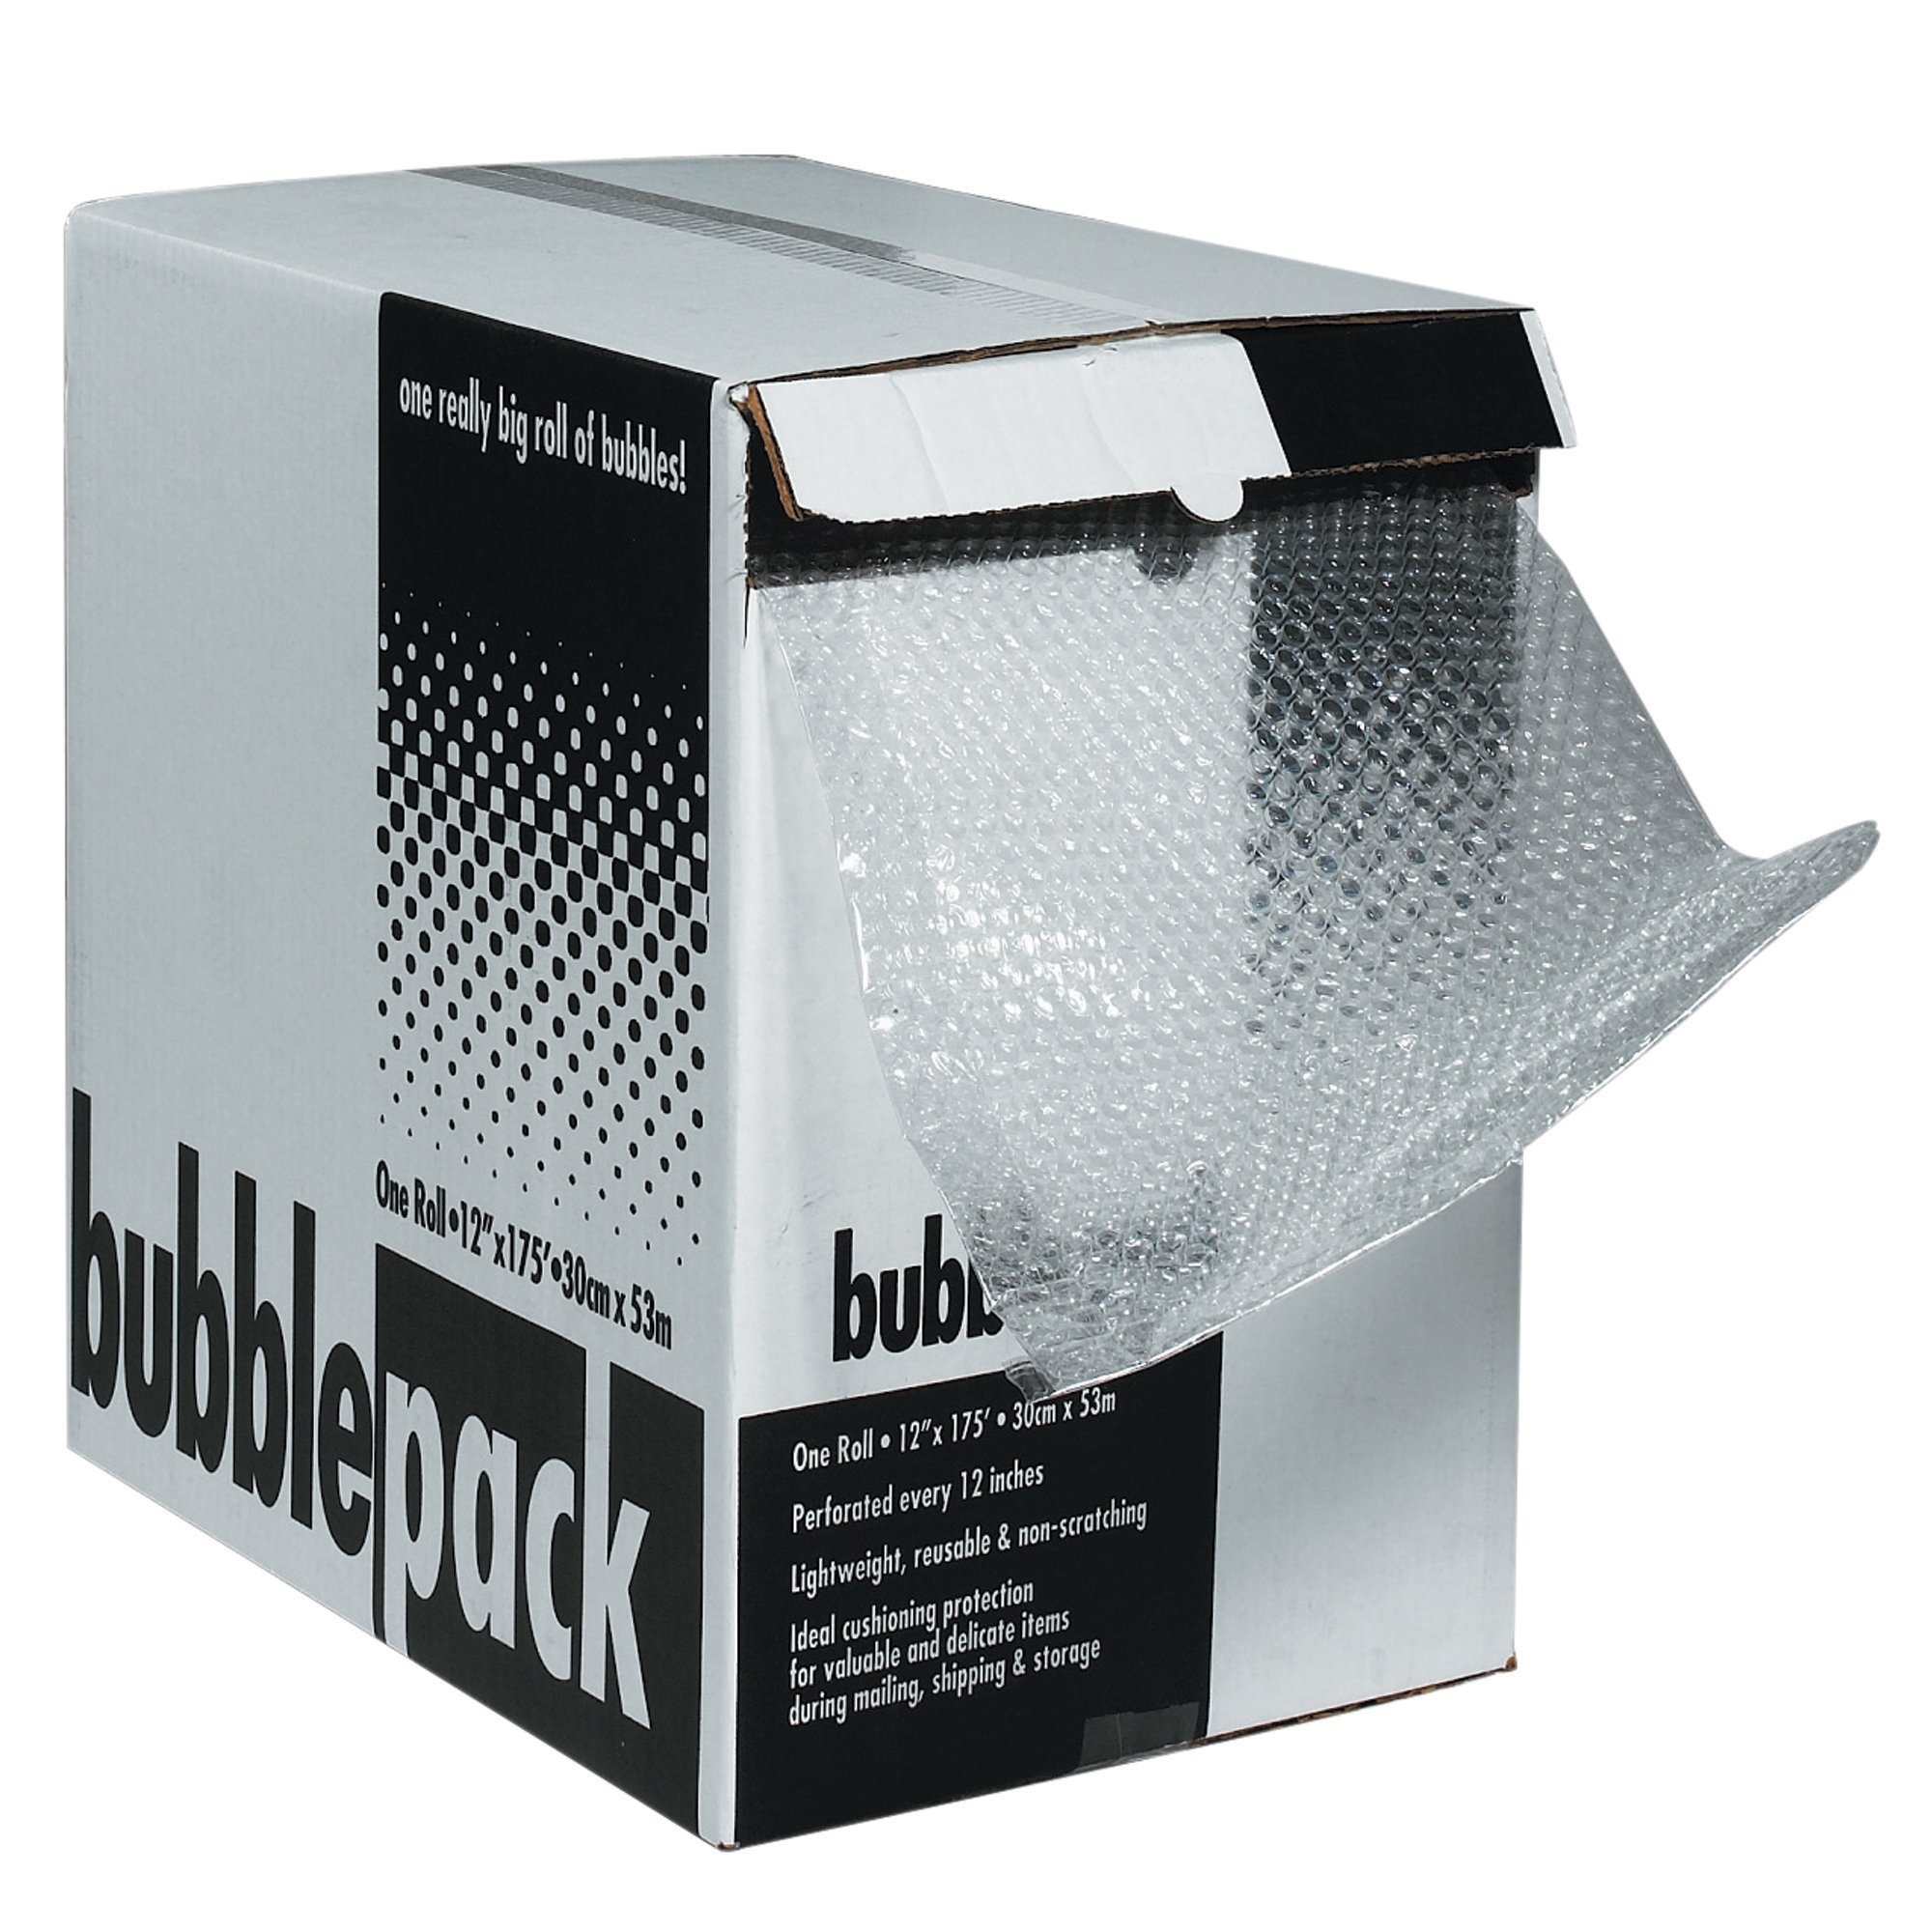 Top Pack Supply Bubble Dispenser Pack, 3/16'' x 24'' x 175', Clear (Pack of 1)